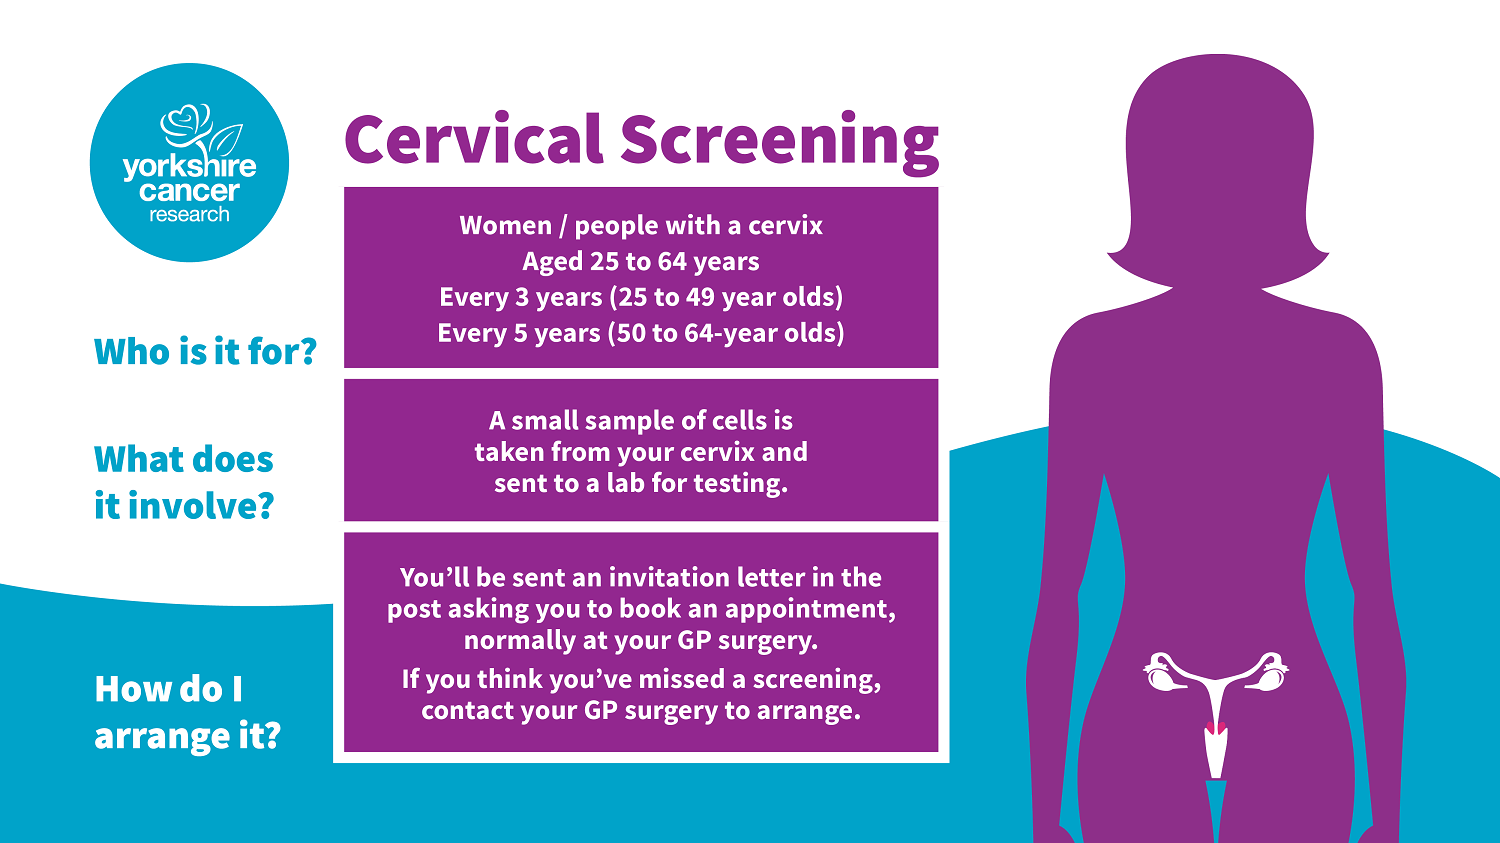 Women aged 25 to 64 are invited for cervical screening every 3-5 years. A small sample of cells is taken from your cervix and sent to a lab for testing.